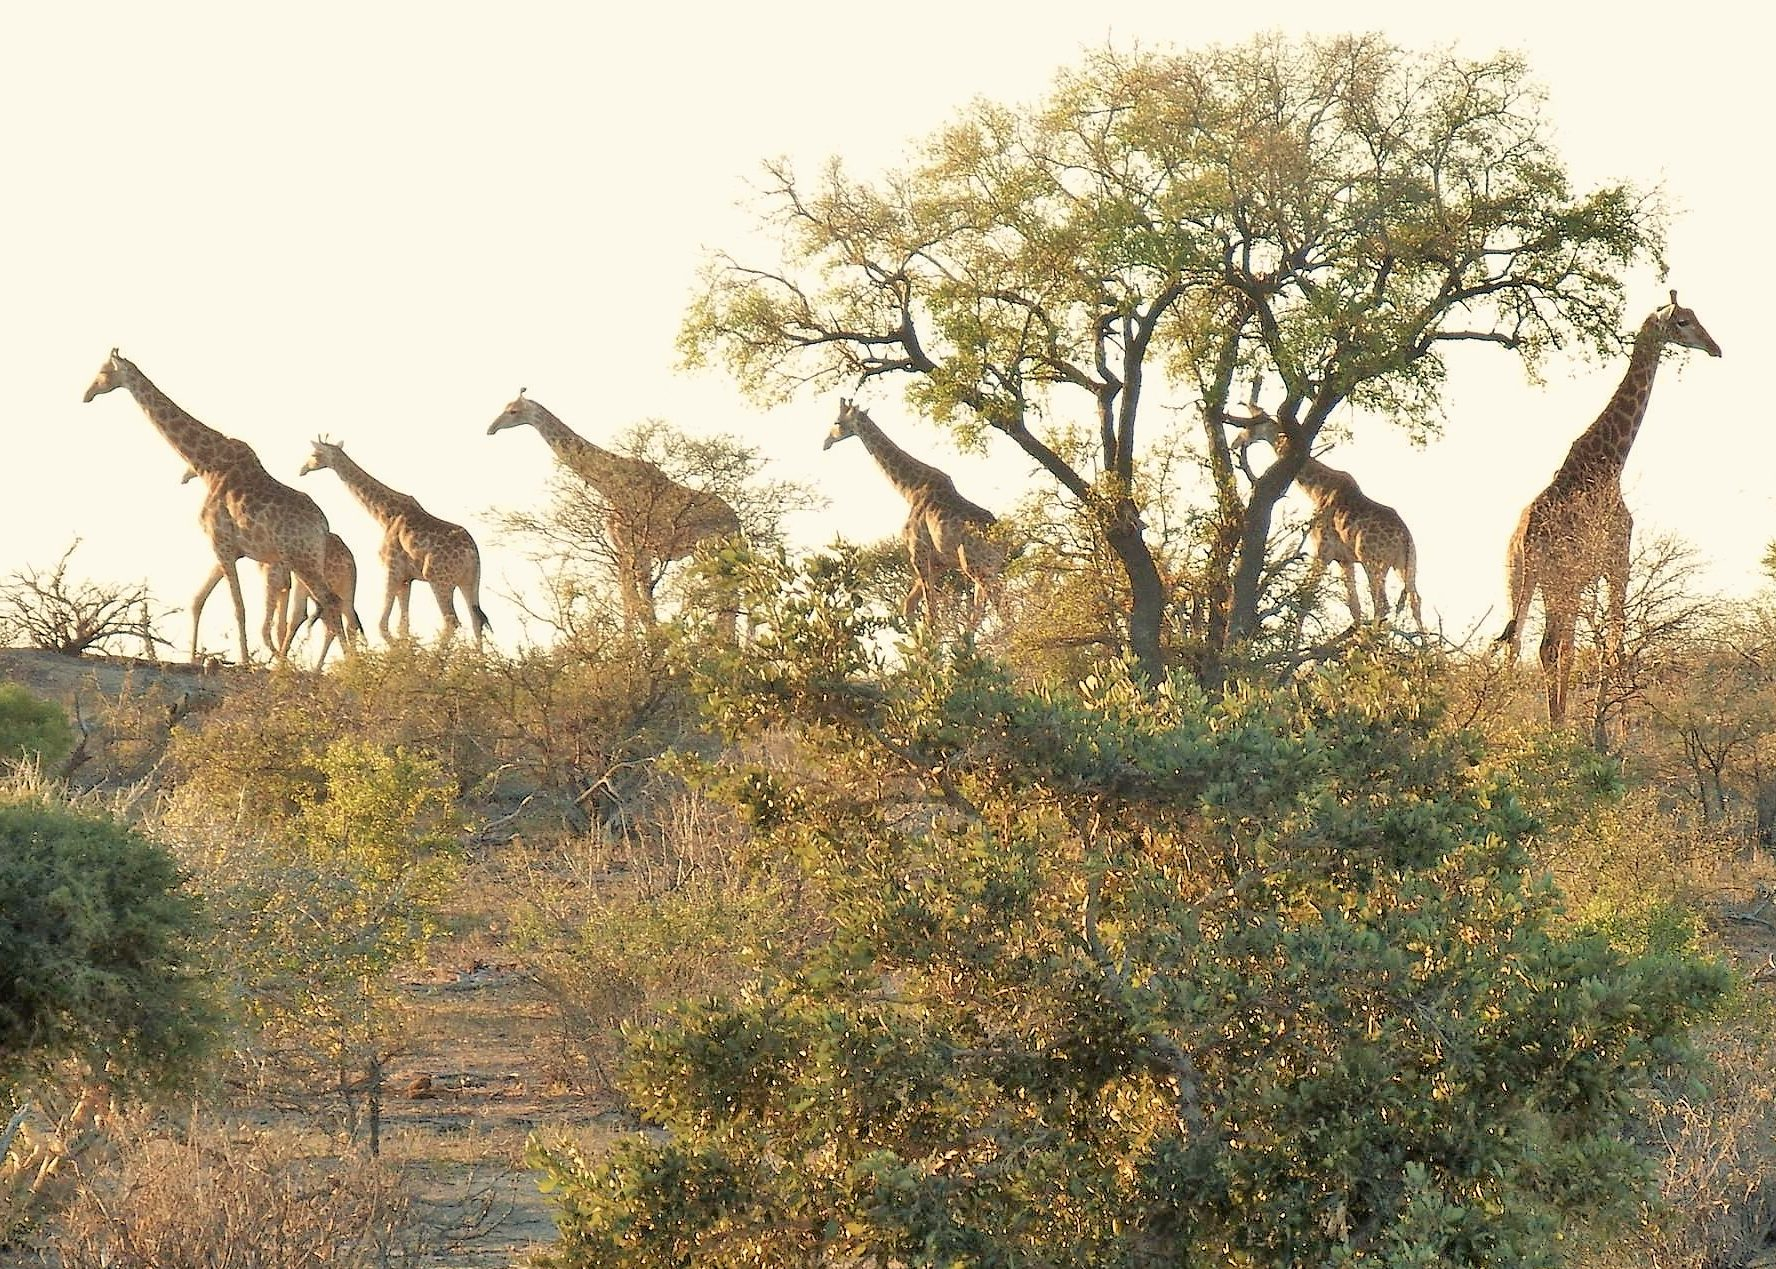 Giraffe processing along the horizon at nDzuti